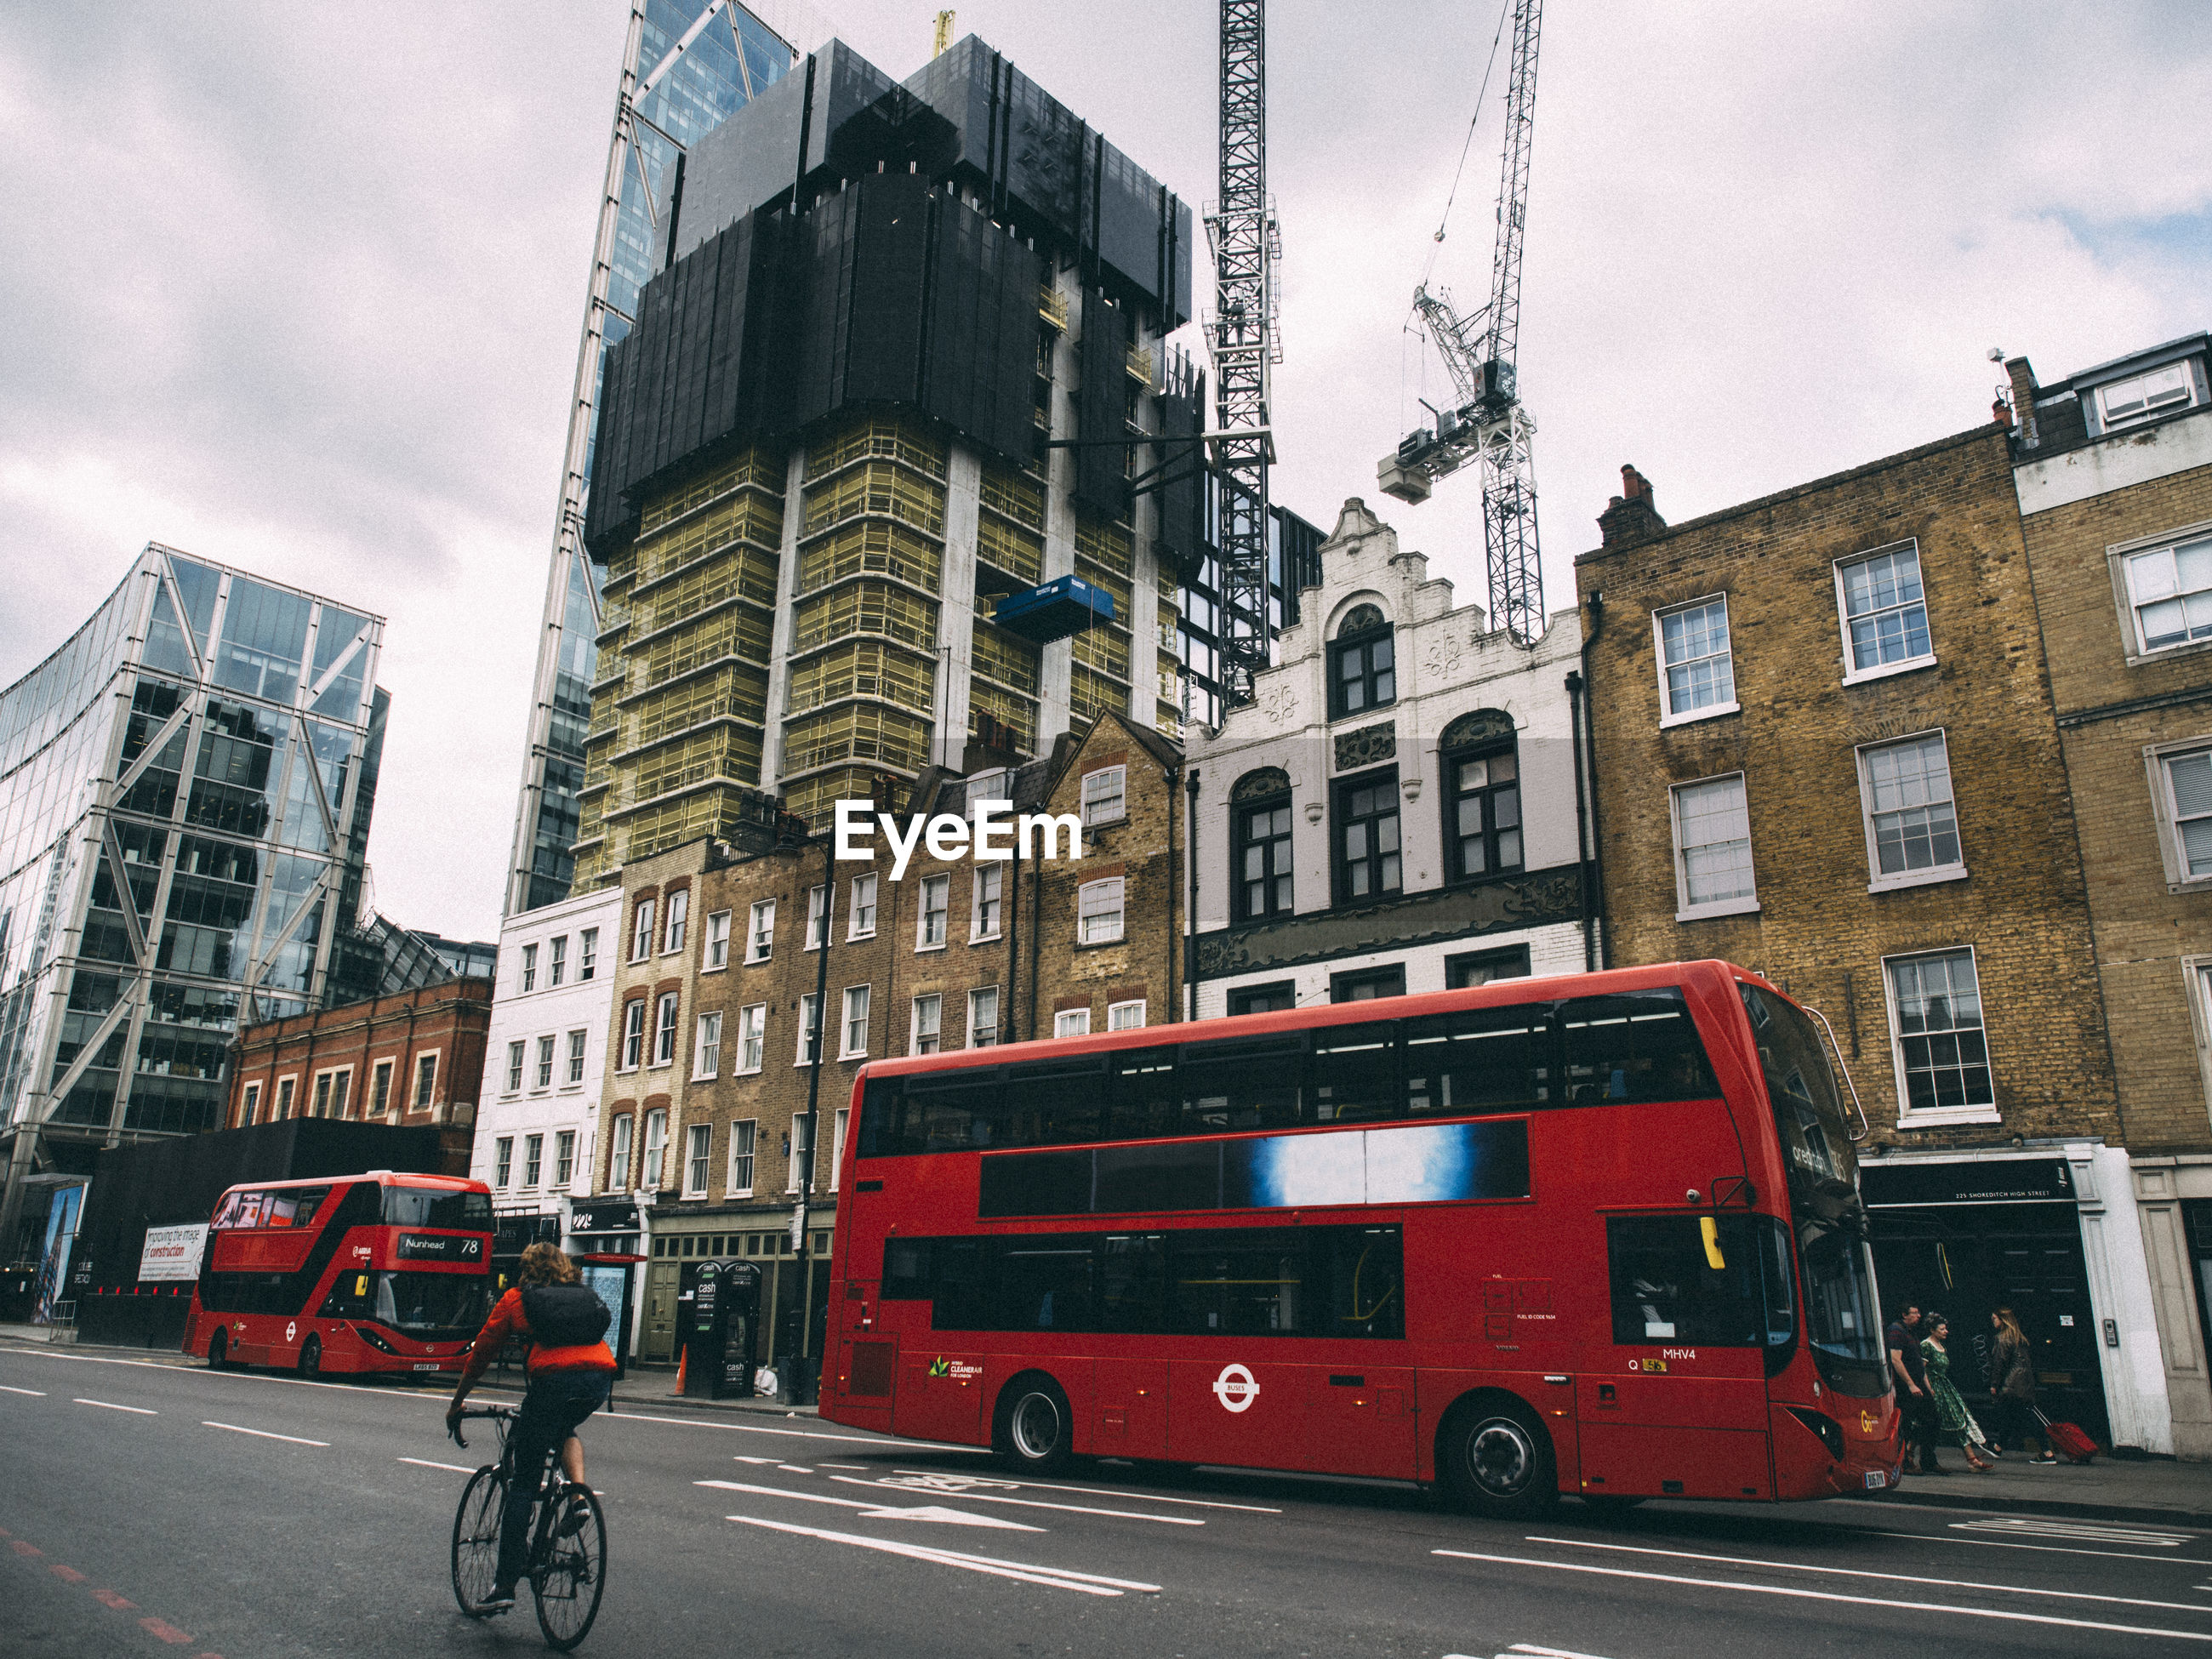 Double-decker bus on road against sky in city